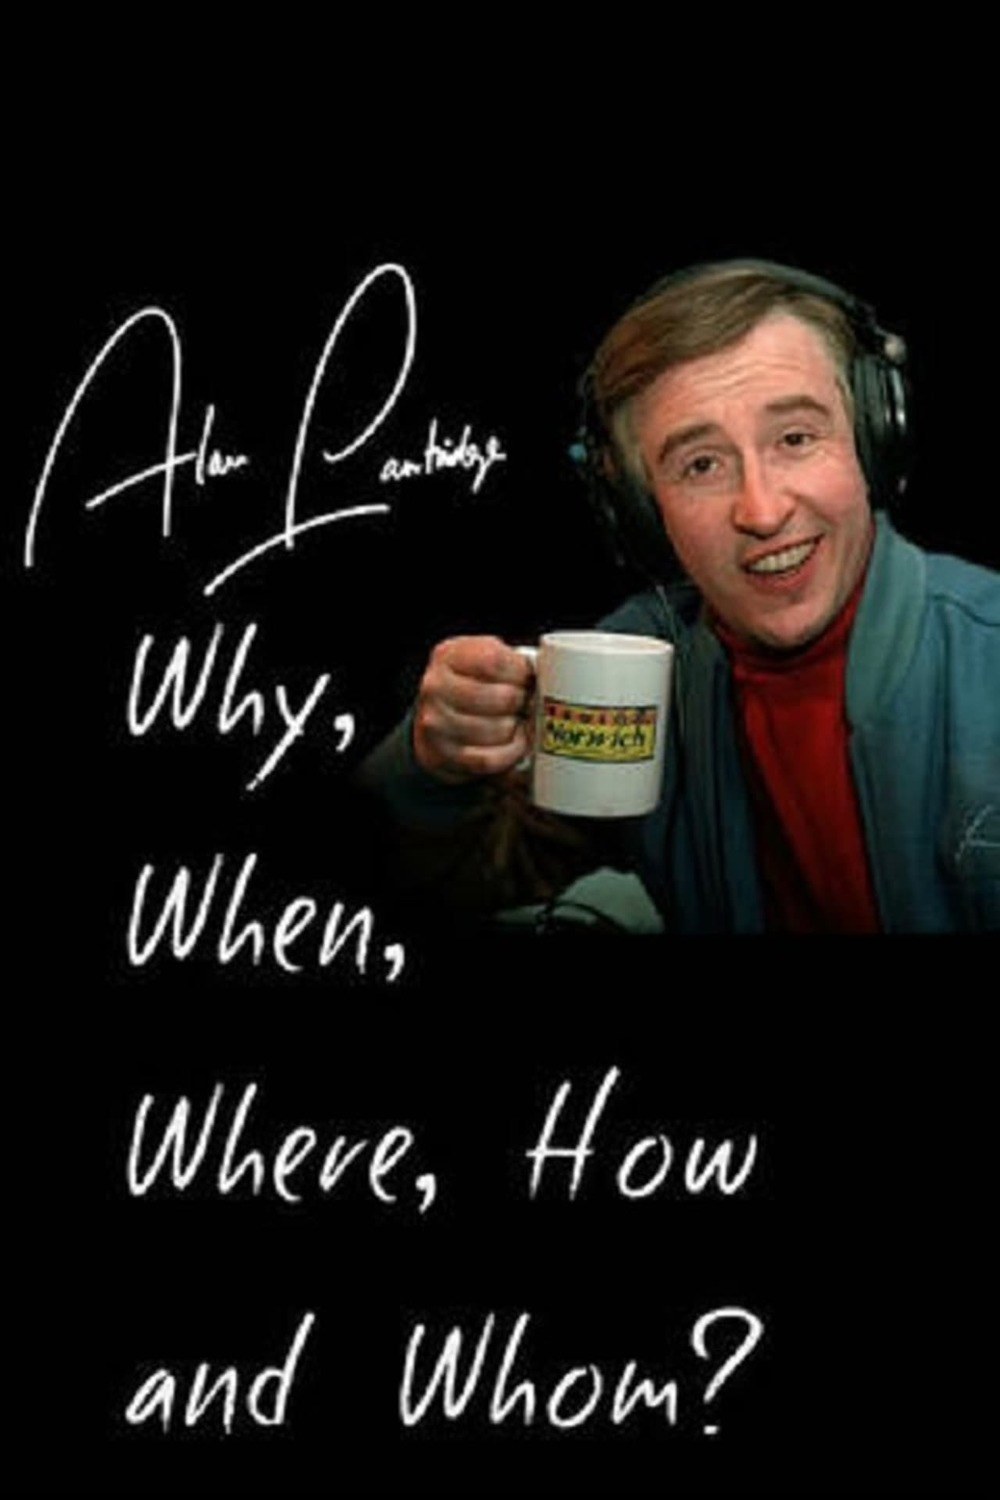 Alan Partridge: Why, When, Where, How And Whom? | Fandíme filmu